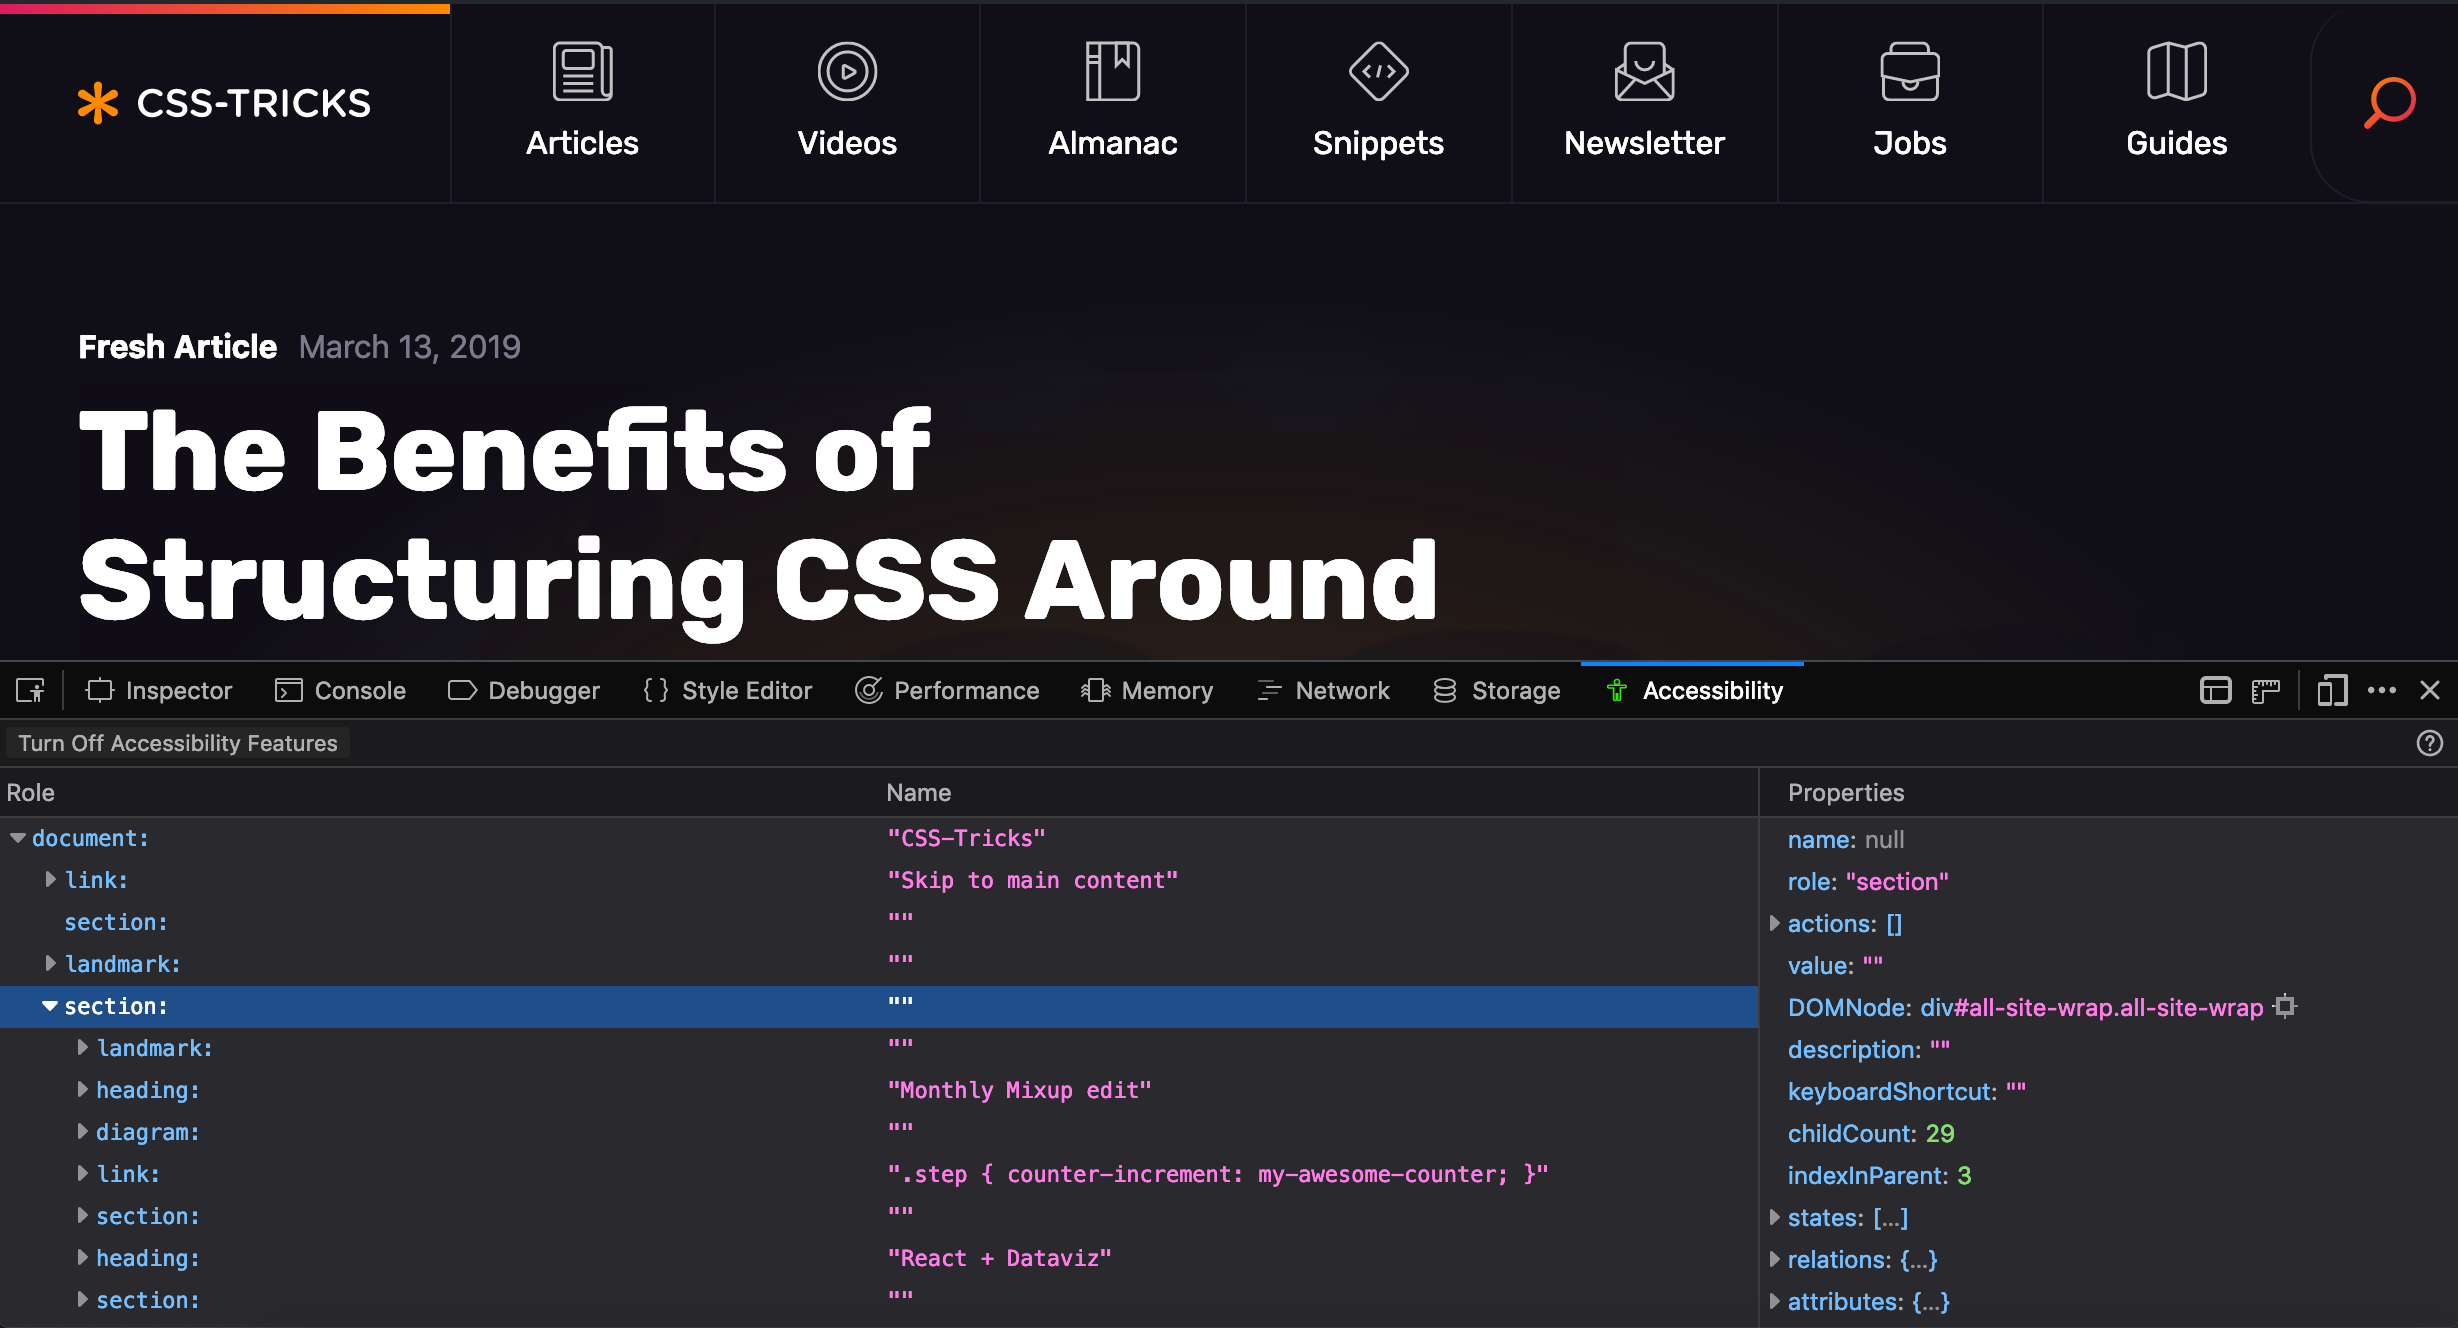 An image of the Firefox Accessibility tool inspecting the CSS-Tricks website